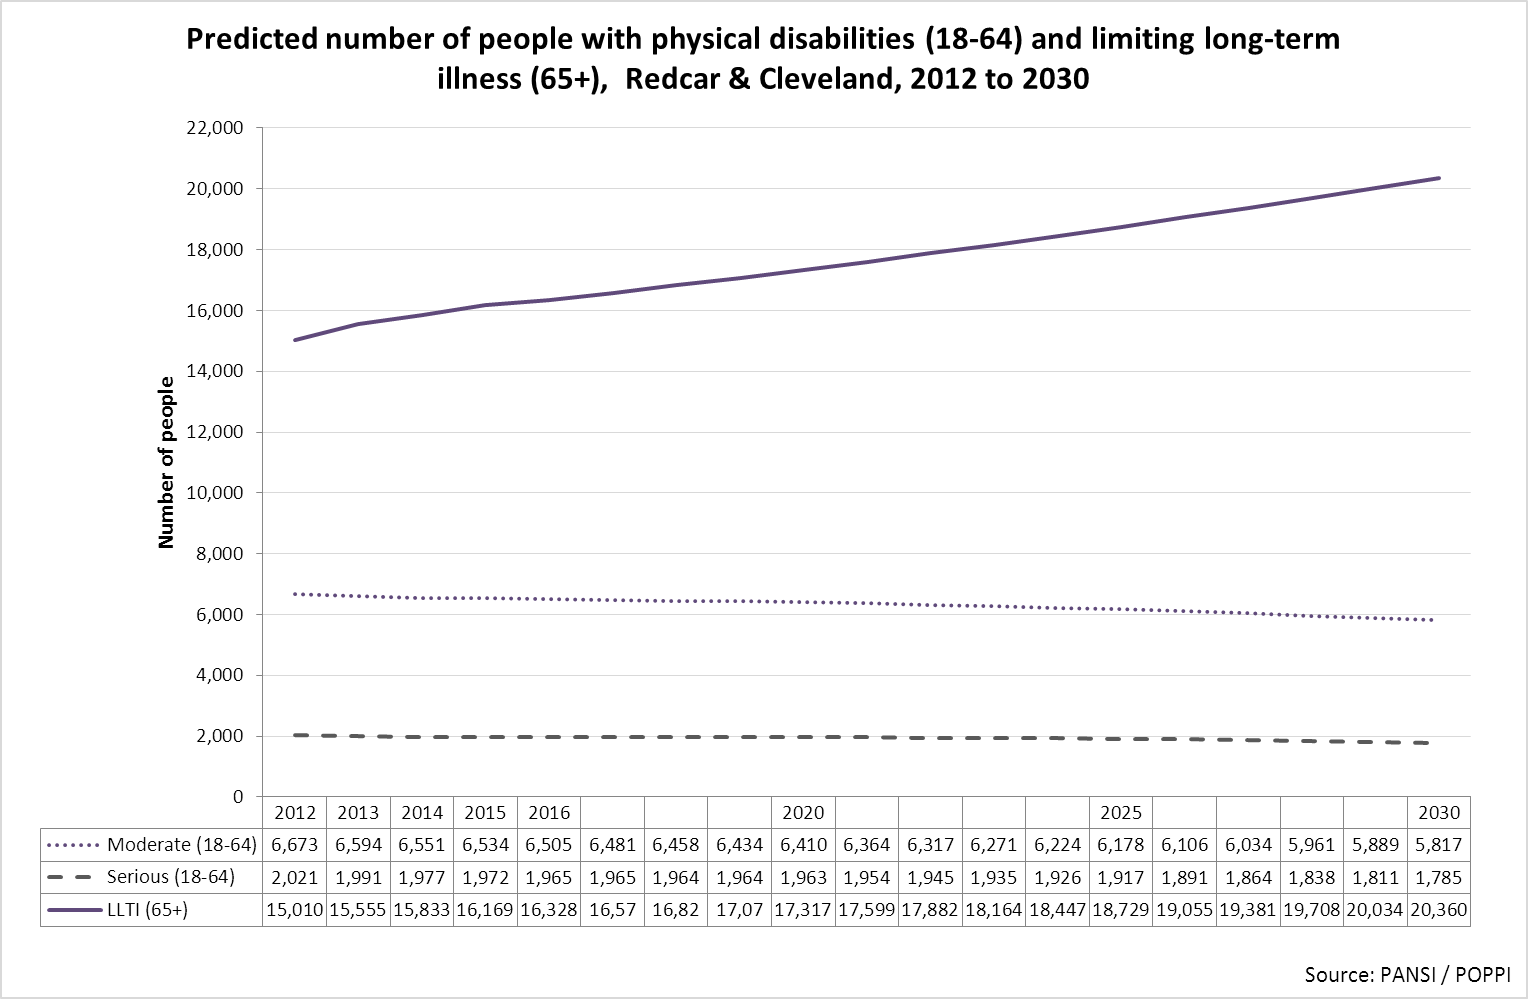 Forecast number of people with physical disabilities, Redcar & Cleveland, 2012 to 2030